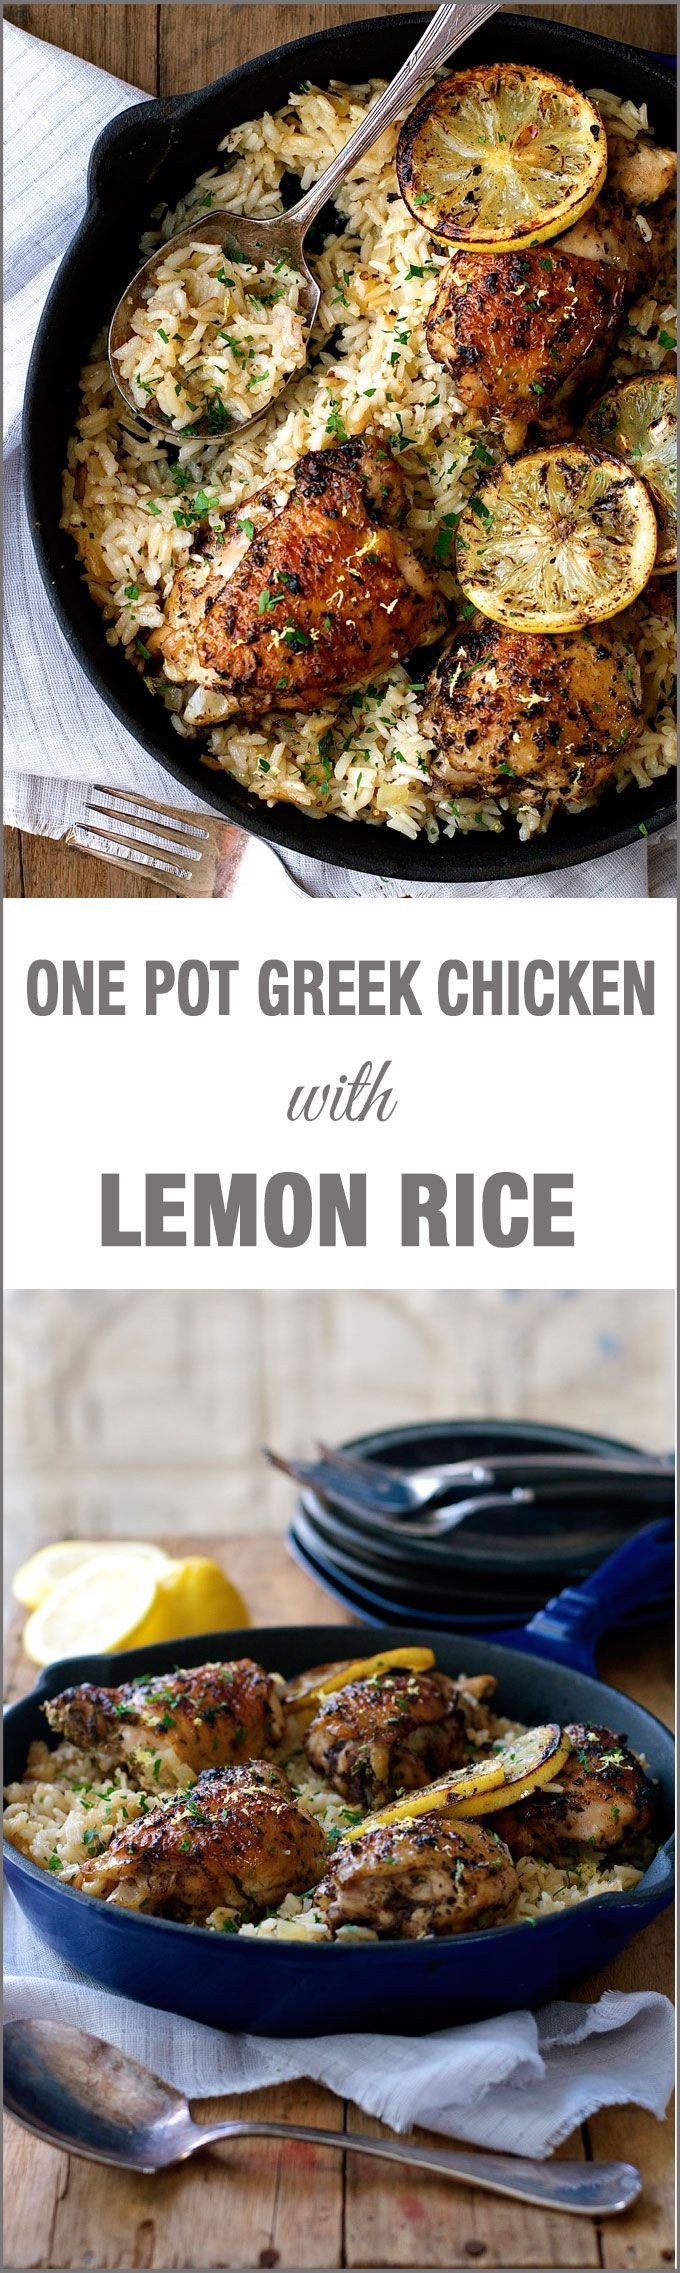 One Pot Greek Chicken with Lemon Rice - even the rice is cooked right in the same pan as the chicken!